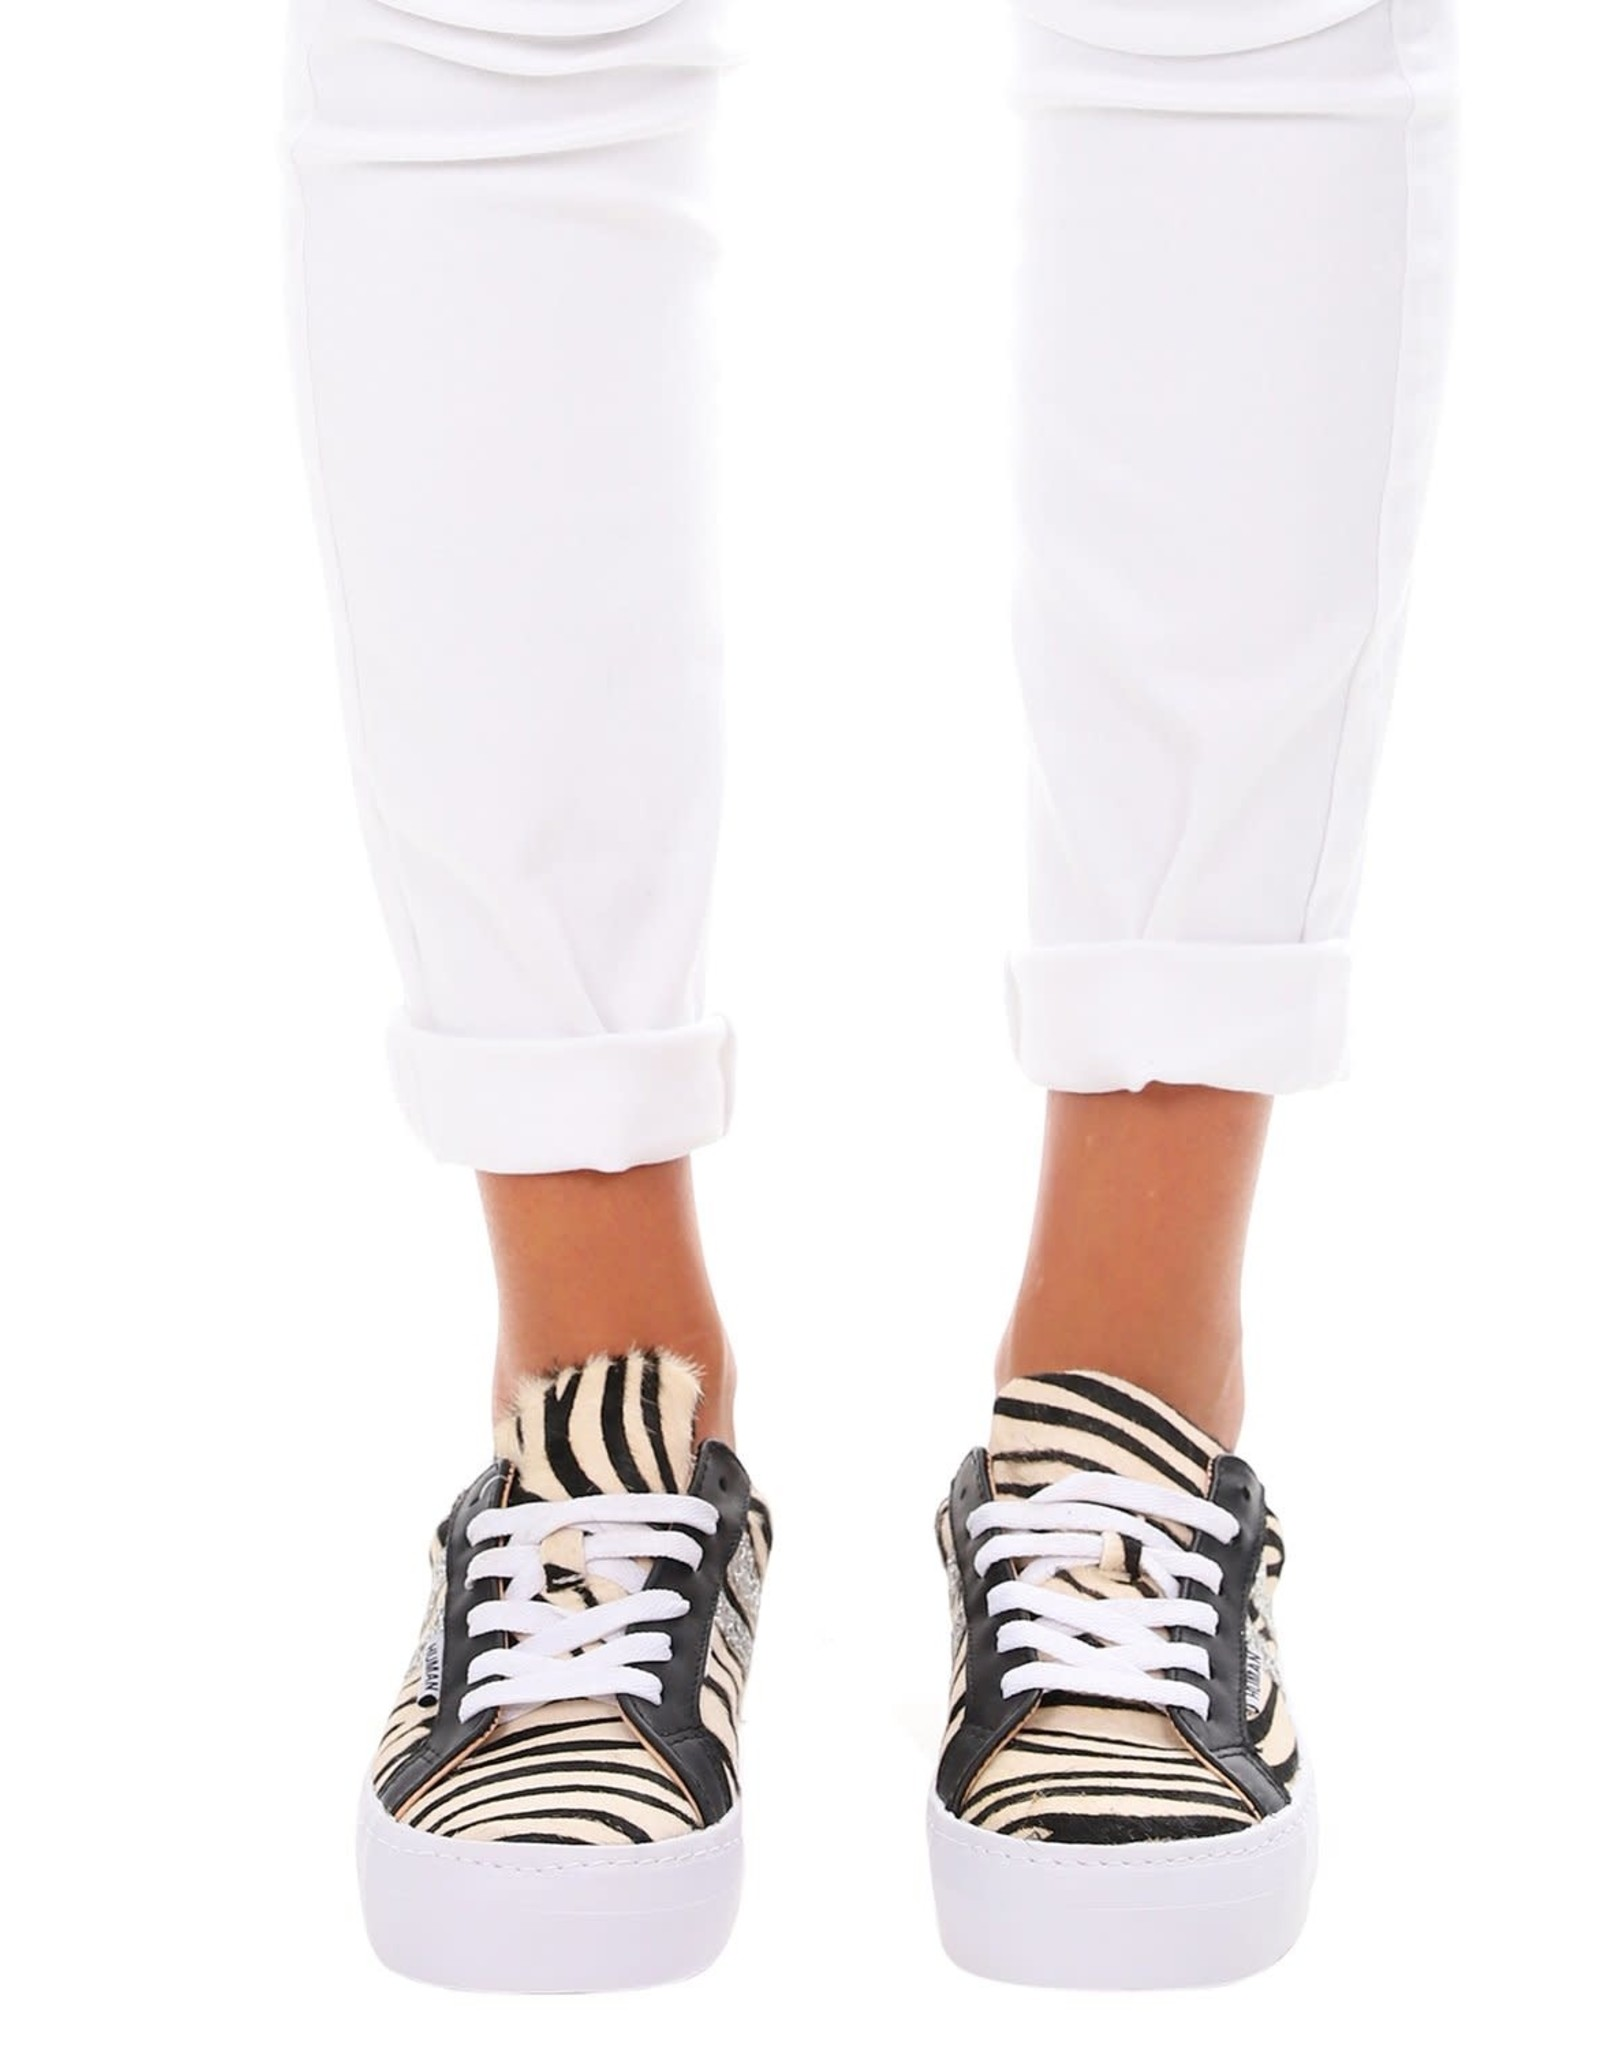 HUMAN Human - Prospect Shoes (Zebra Stripe)